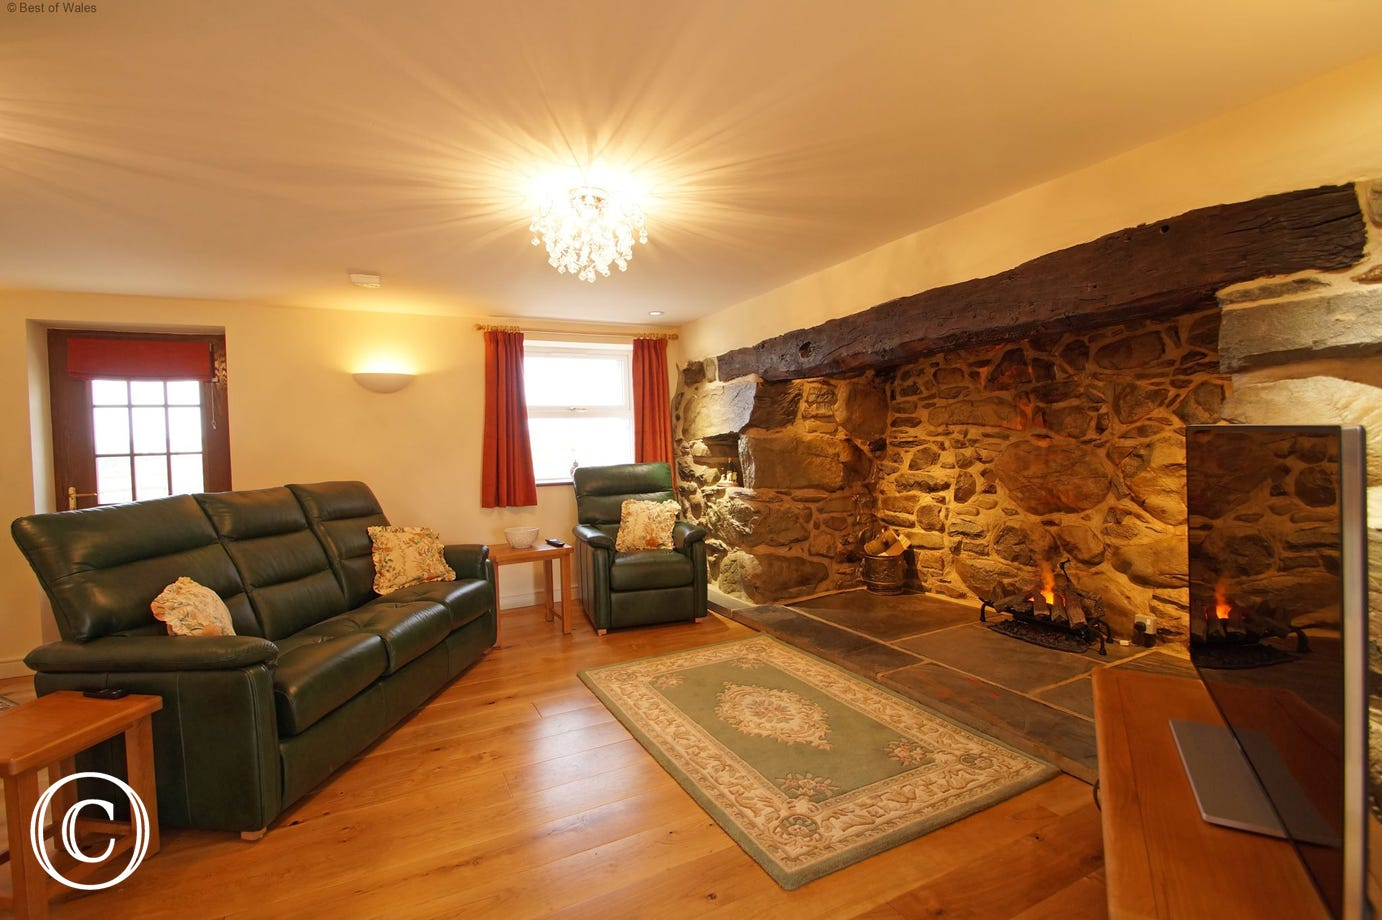 Traditional Welsh farm cottage style with oak flooring and underfloor heating